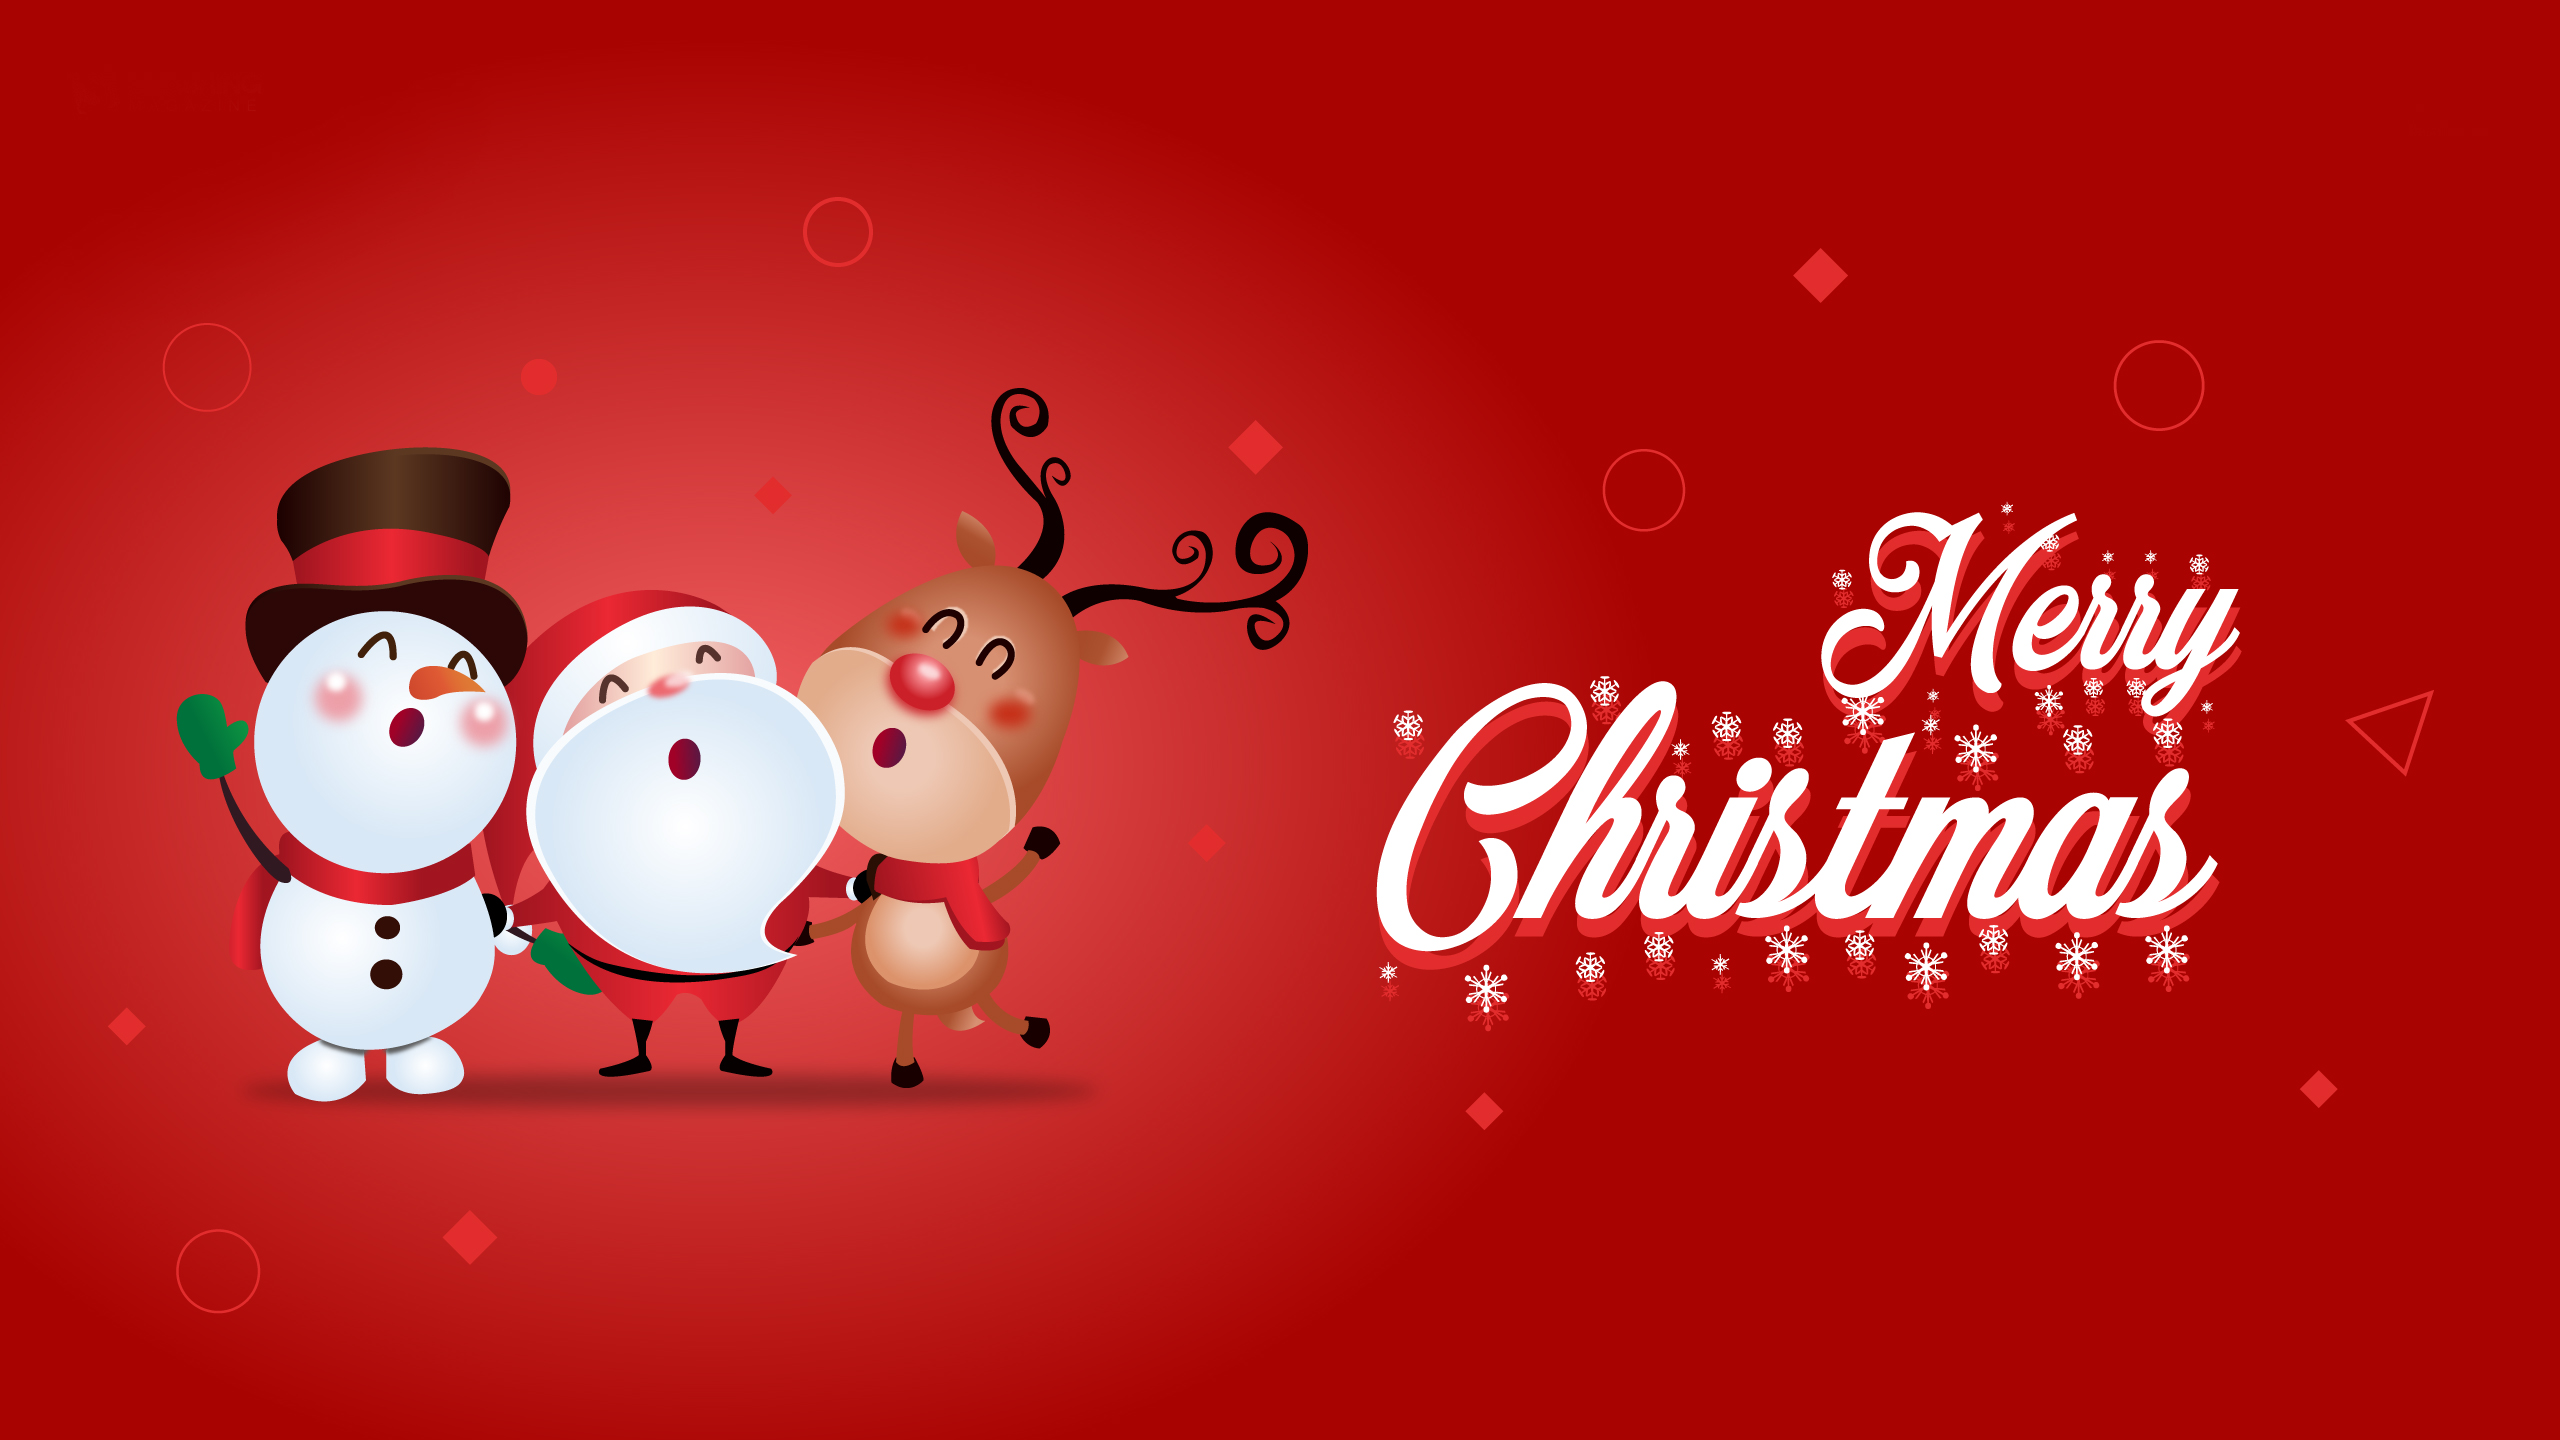 Merry Christmas Wallpaper 2560x1440